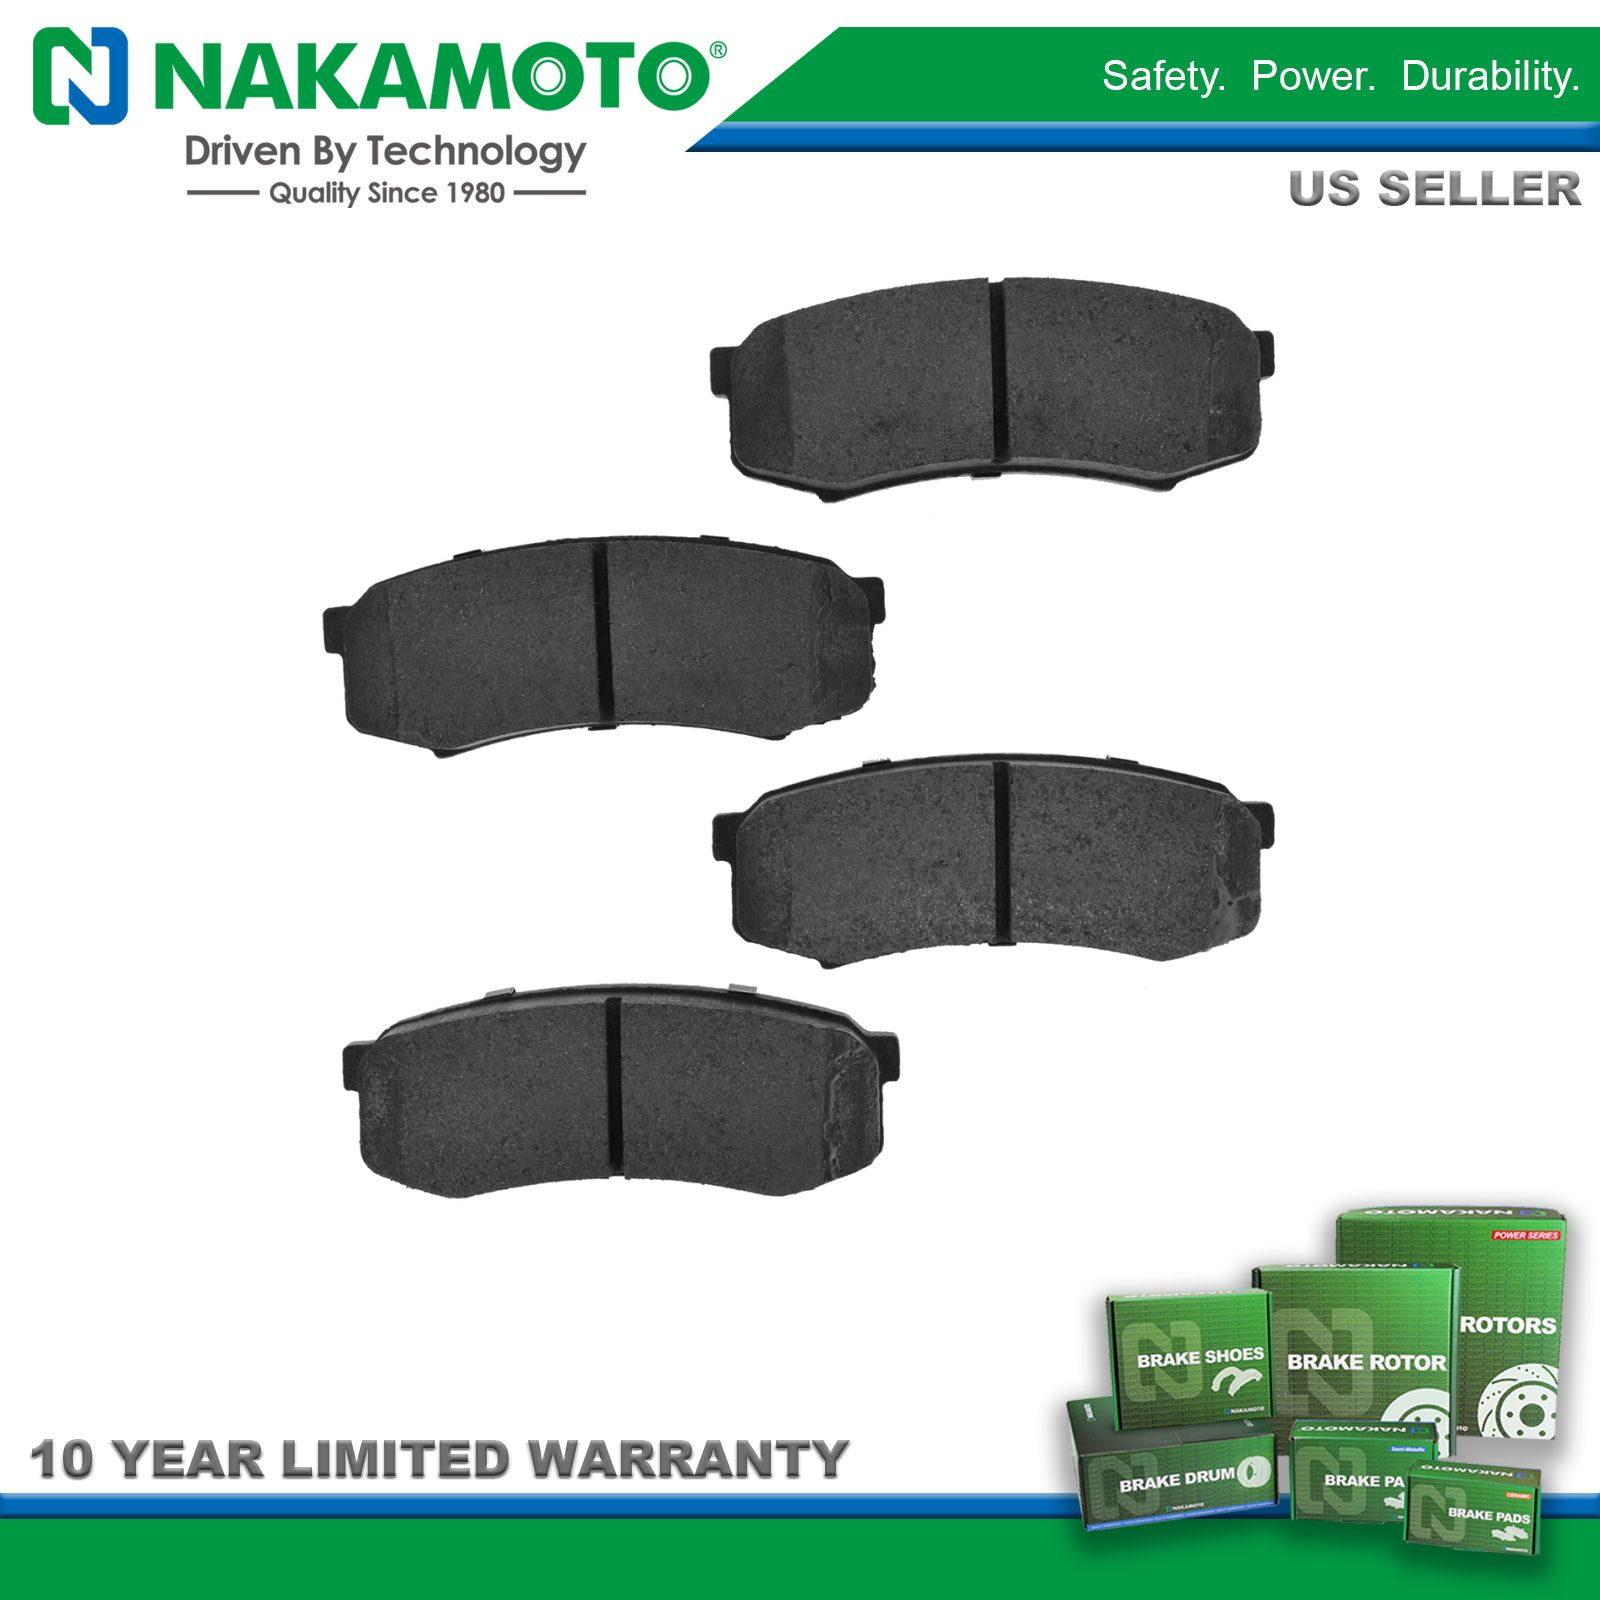 hight resolution of nakamoto brake pads premium posi metallic rear kit for toyota sequoia 4runner